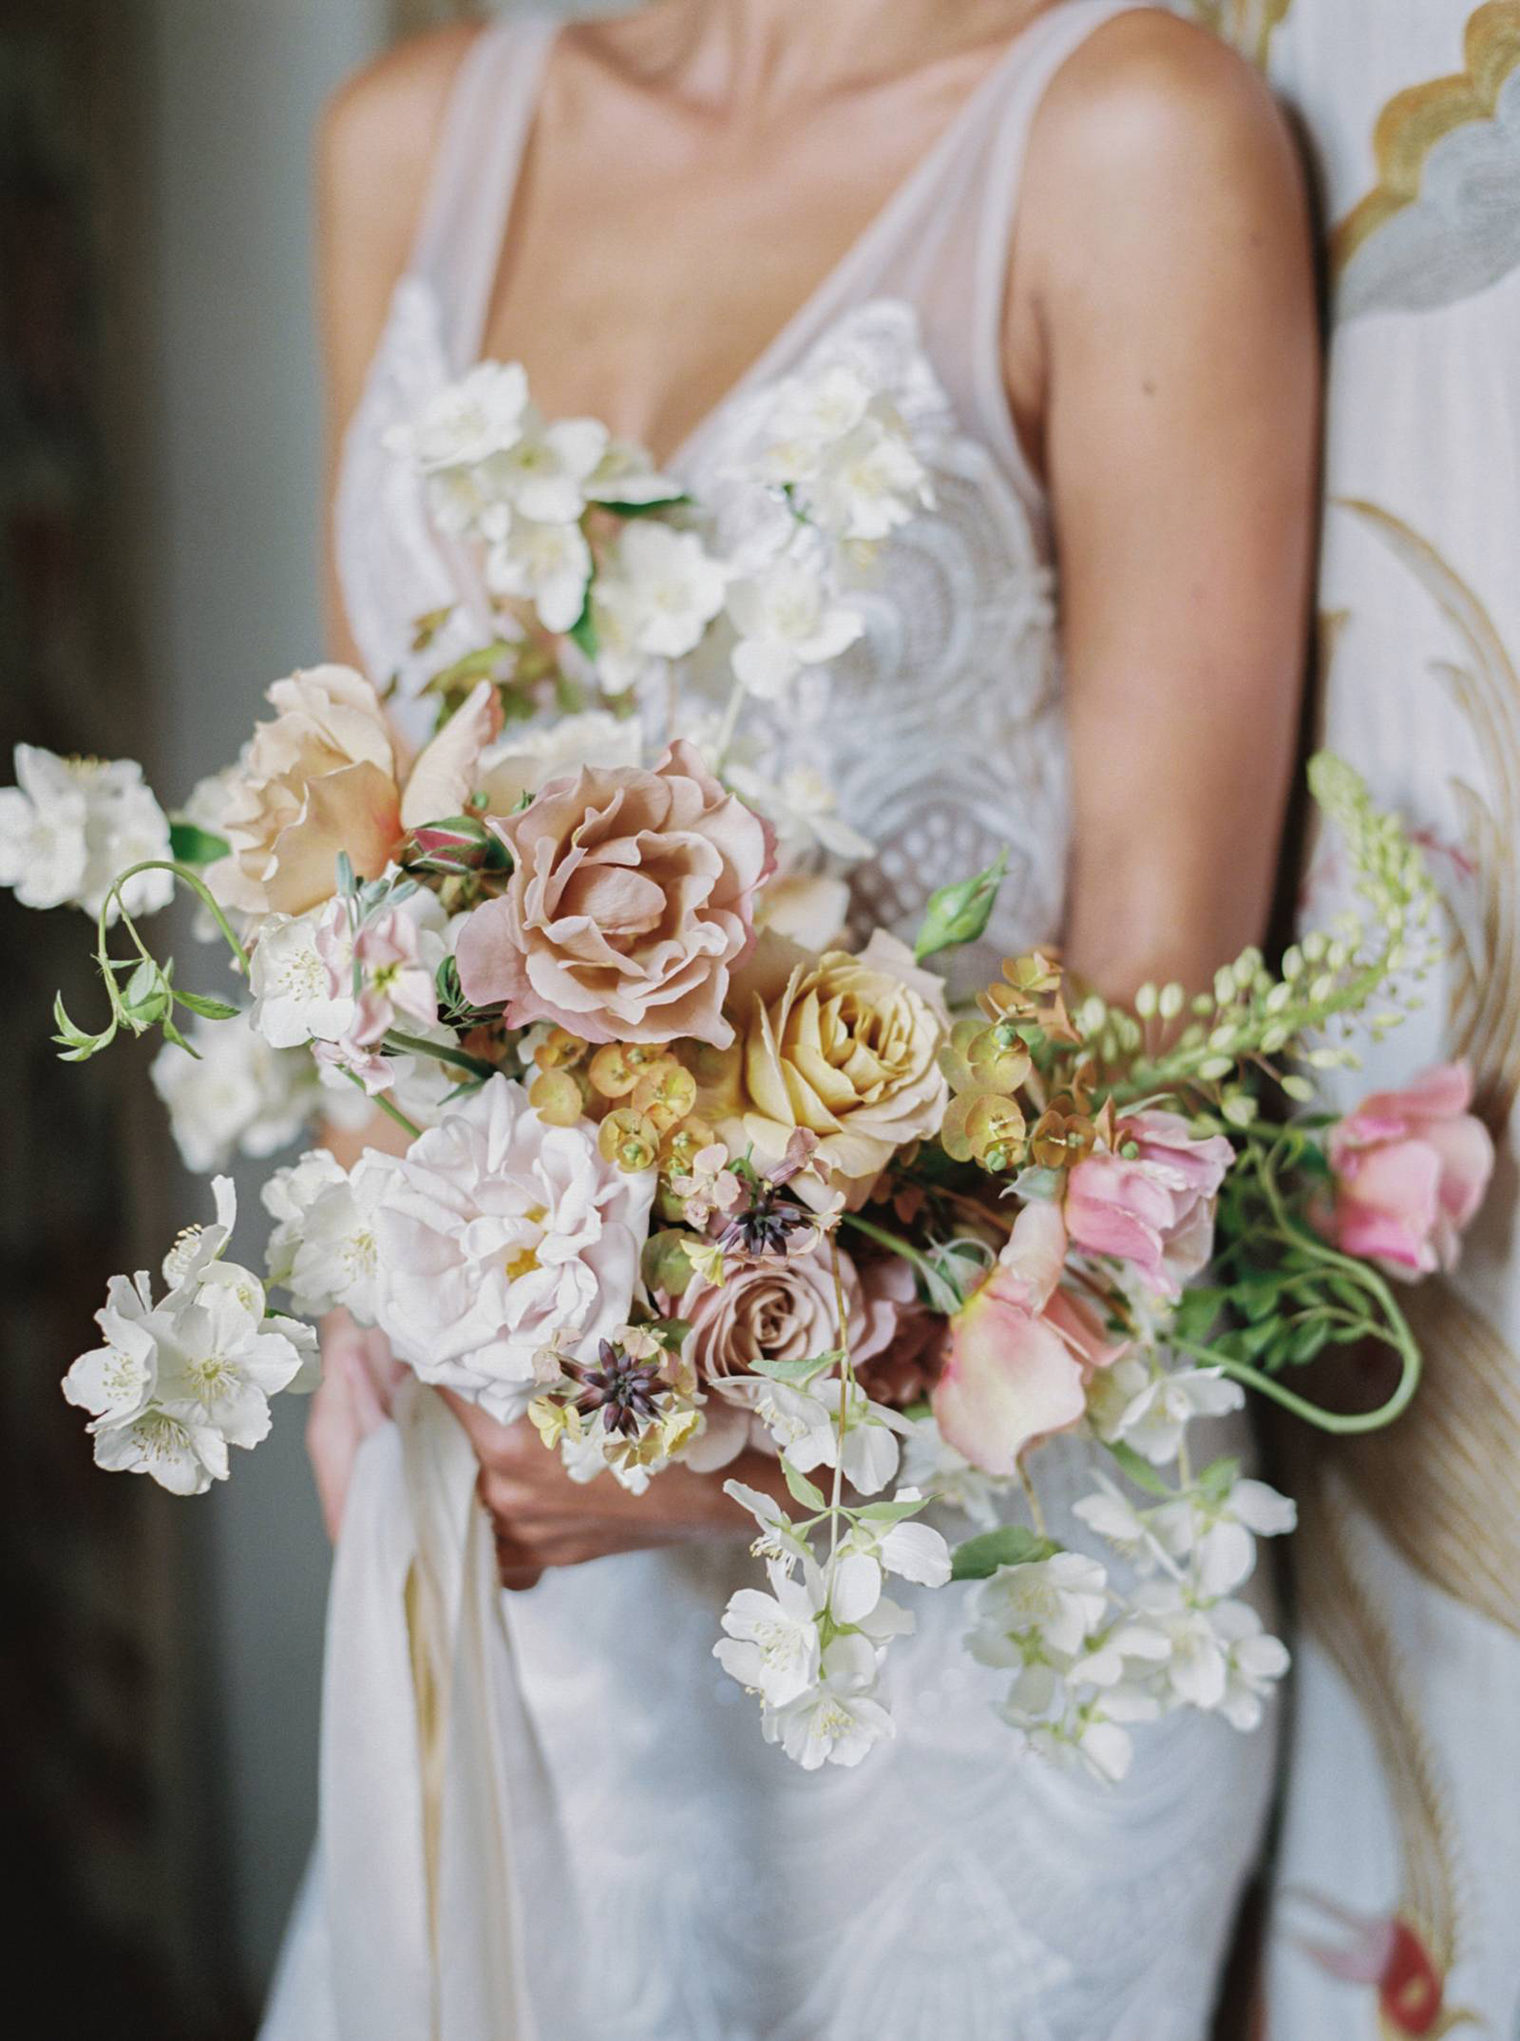 Bridal Bouquet Ideas - Bouquet by Jo Flowers. Photographer Taylor & Porter.